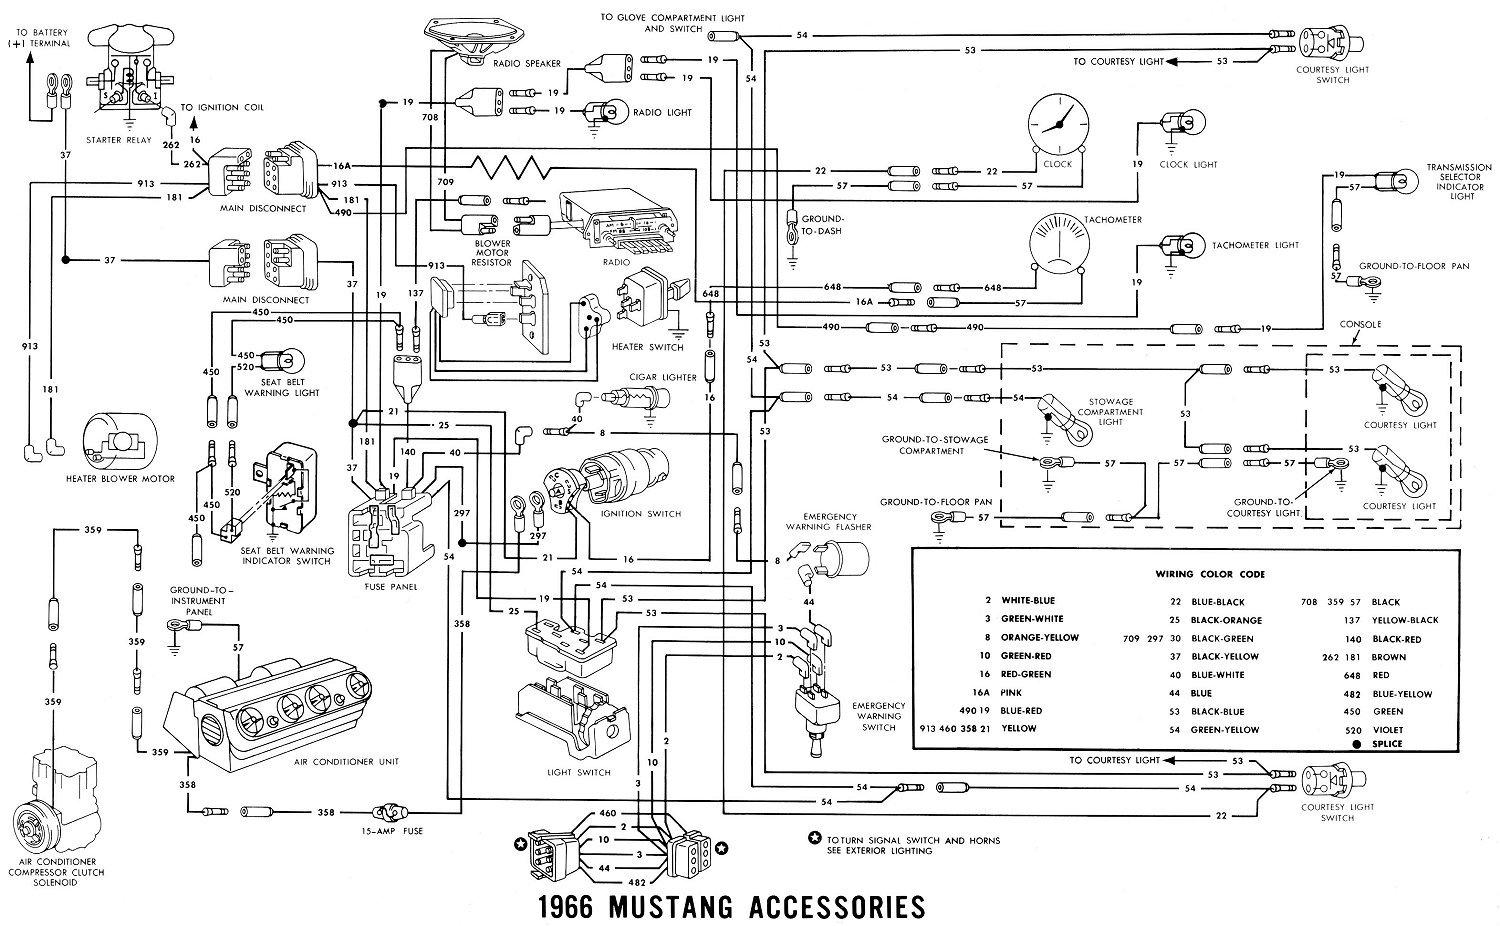 246931 Rally Pac Tach Question on 1963 Ford Fairlane Wiring Diagram